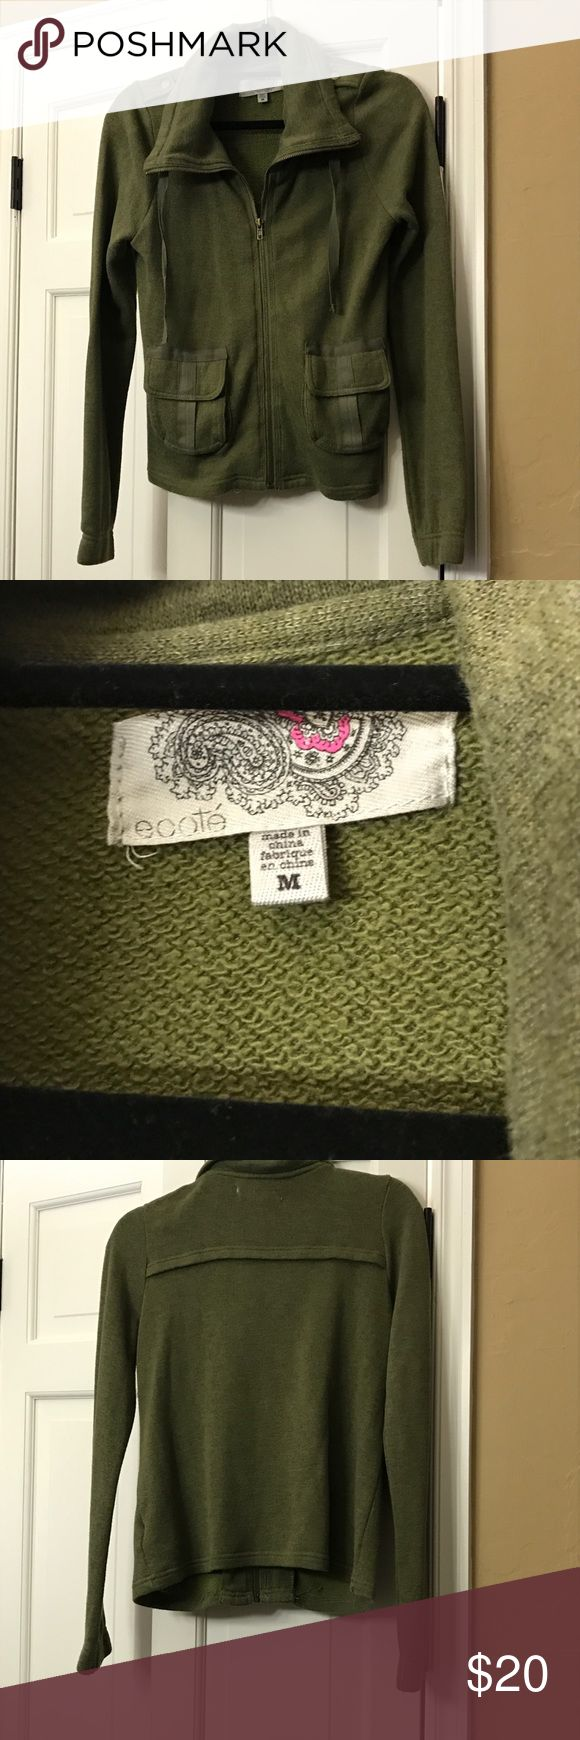 Urban outfitters green sweatshirt jacket size M Some stray threads at the hem, but was purchased like that, has never actually been worn. Urban Outfitters Jackets & Coats